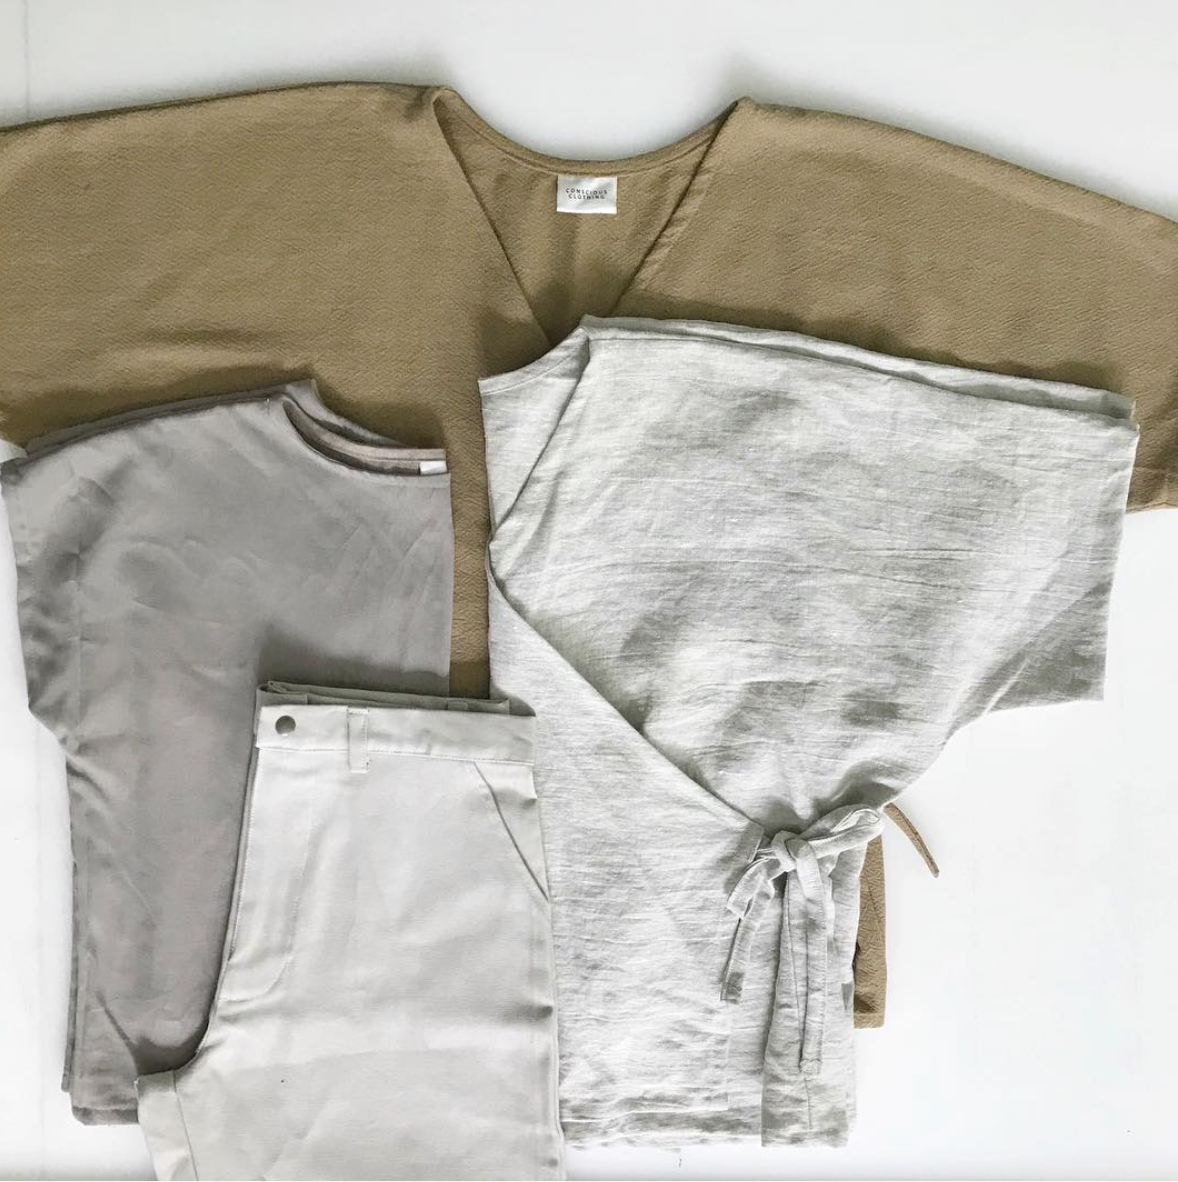 We've designed our latest collection in durable, long-lasting fabrics and neutral colors to help your wardrobe stay in style and in your closet.